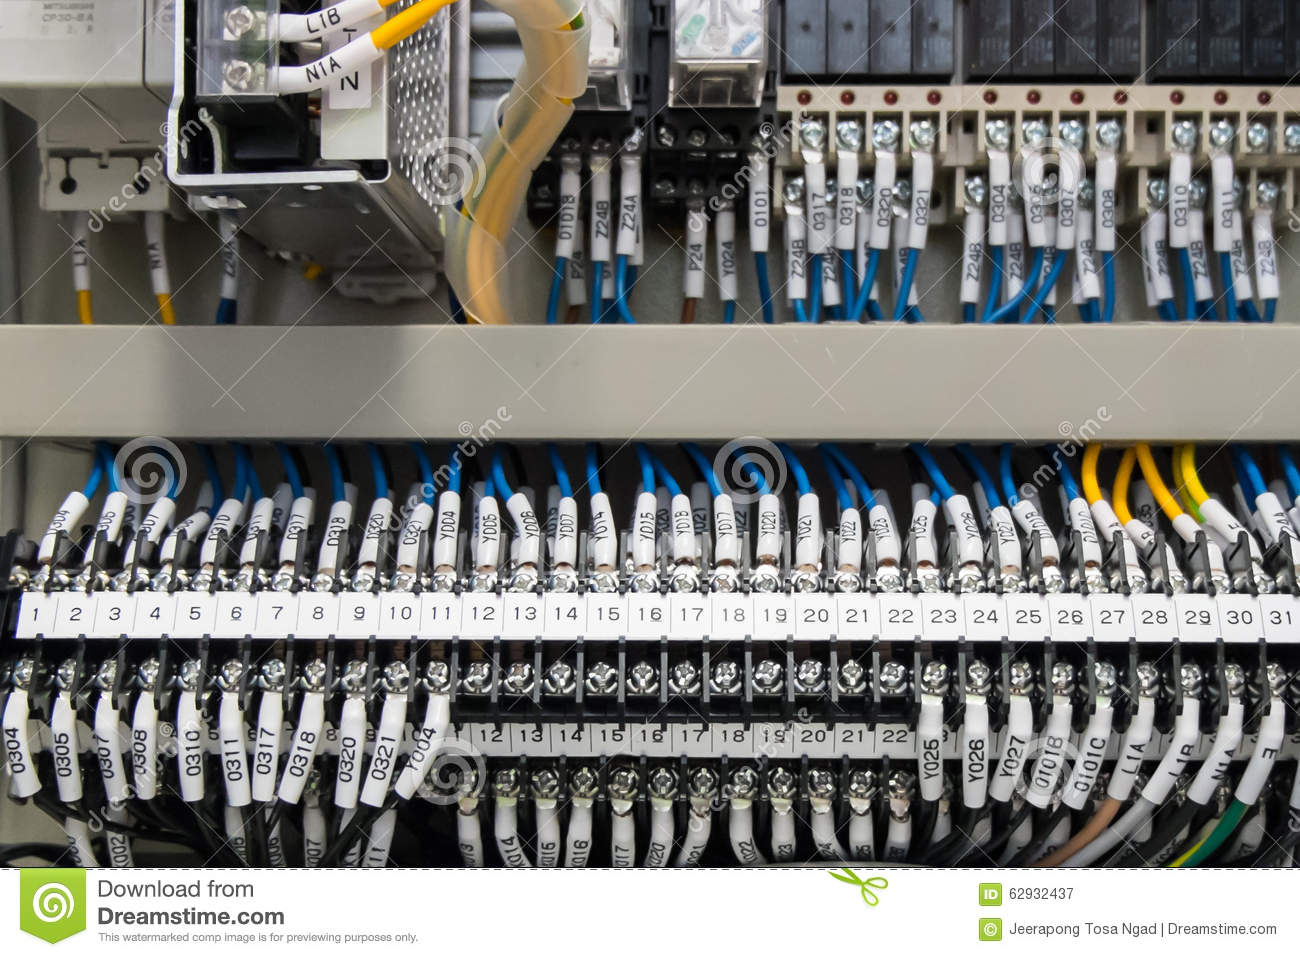 Stock Photo Plc Control Terminal Wiring Panel Wires Industrial Factory Image62932437 on electronic relay label